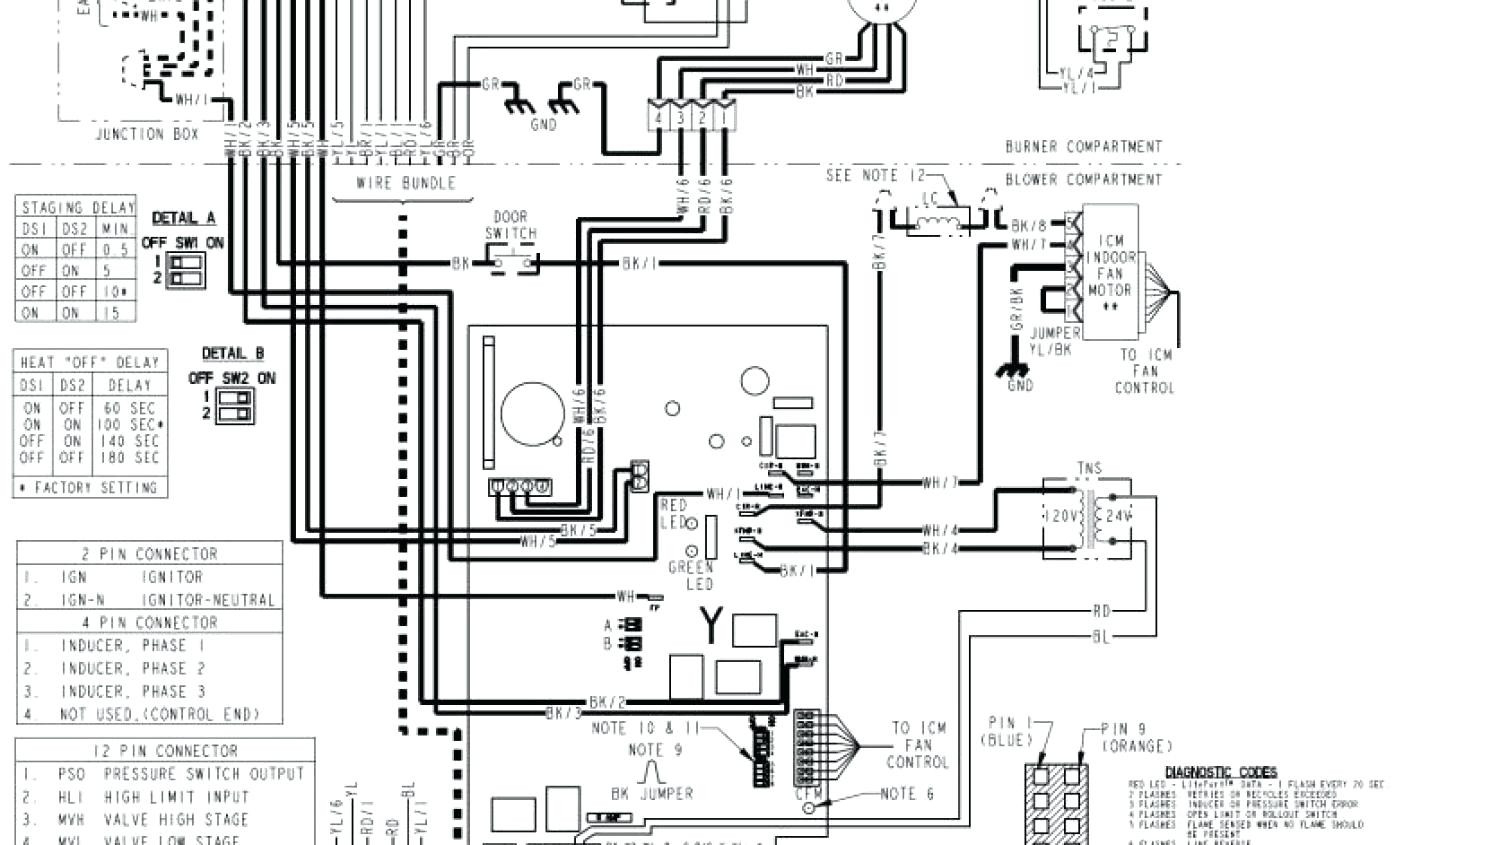 Diagram Ruud Urgg Wiring Diagrams Full Version Hd